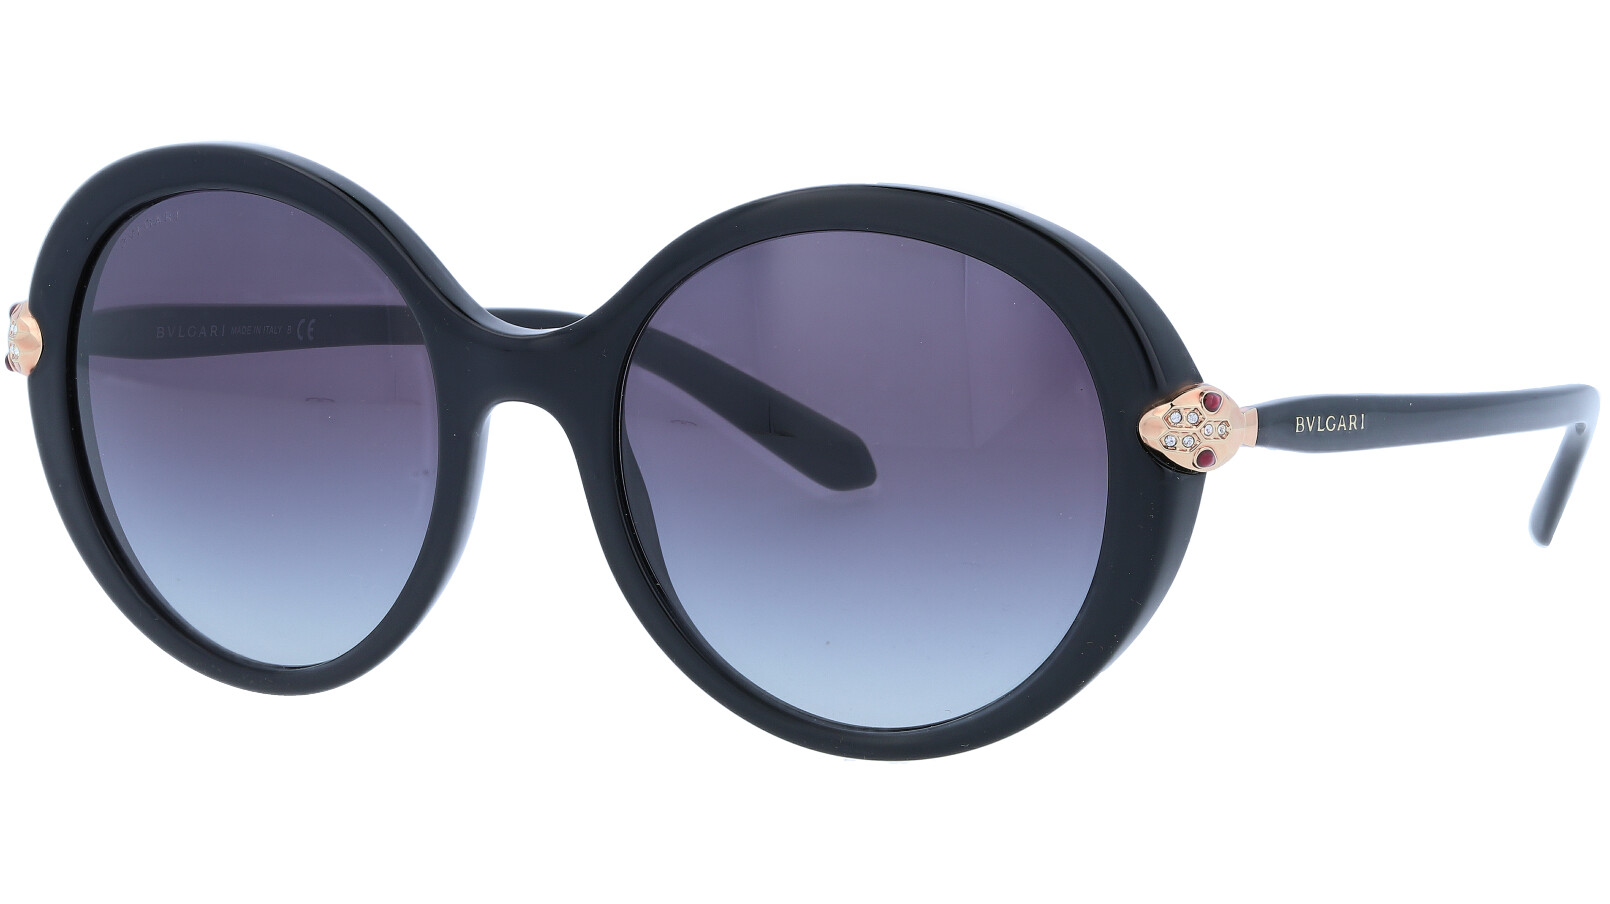 BVLGARI BV8204B 5018G3N 54 BLACK Sunglasses